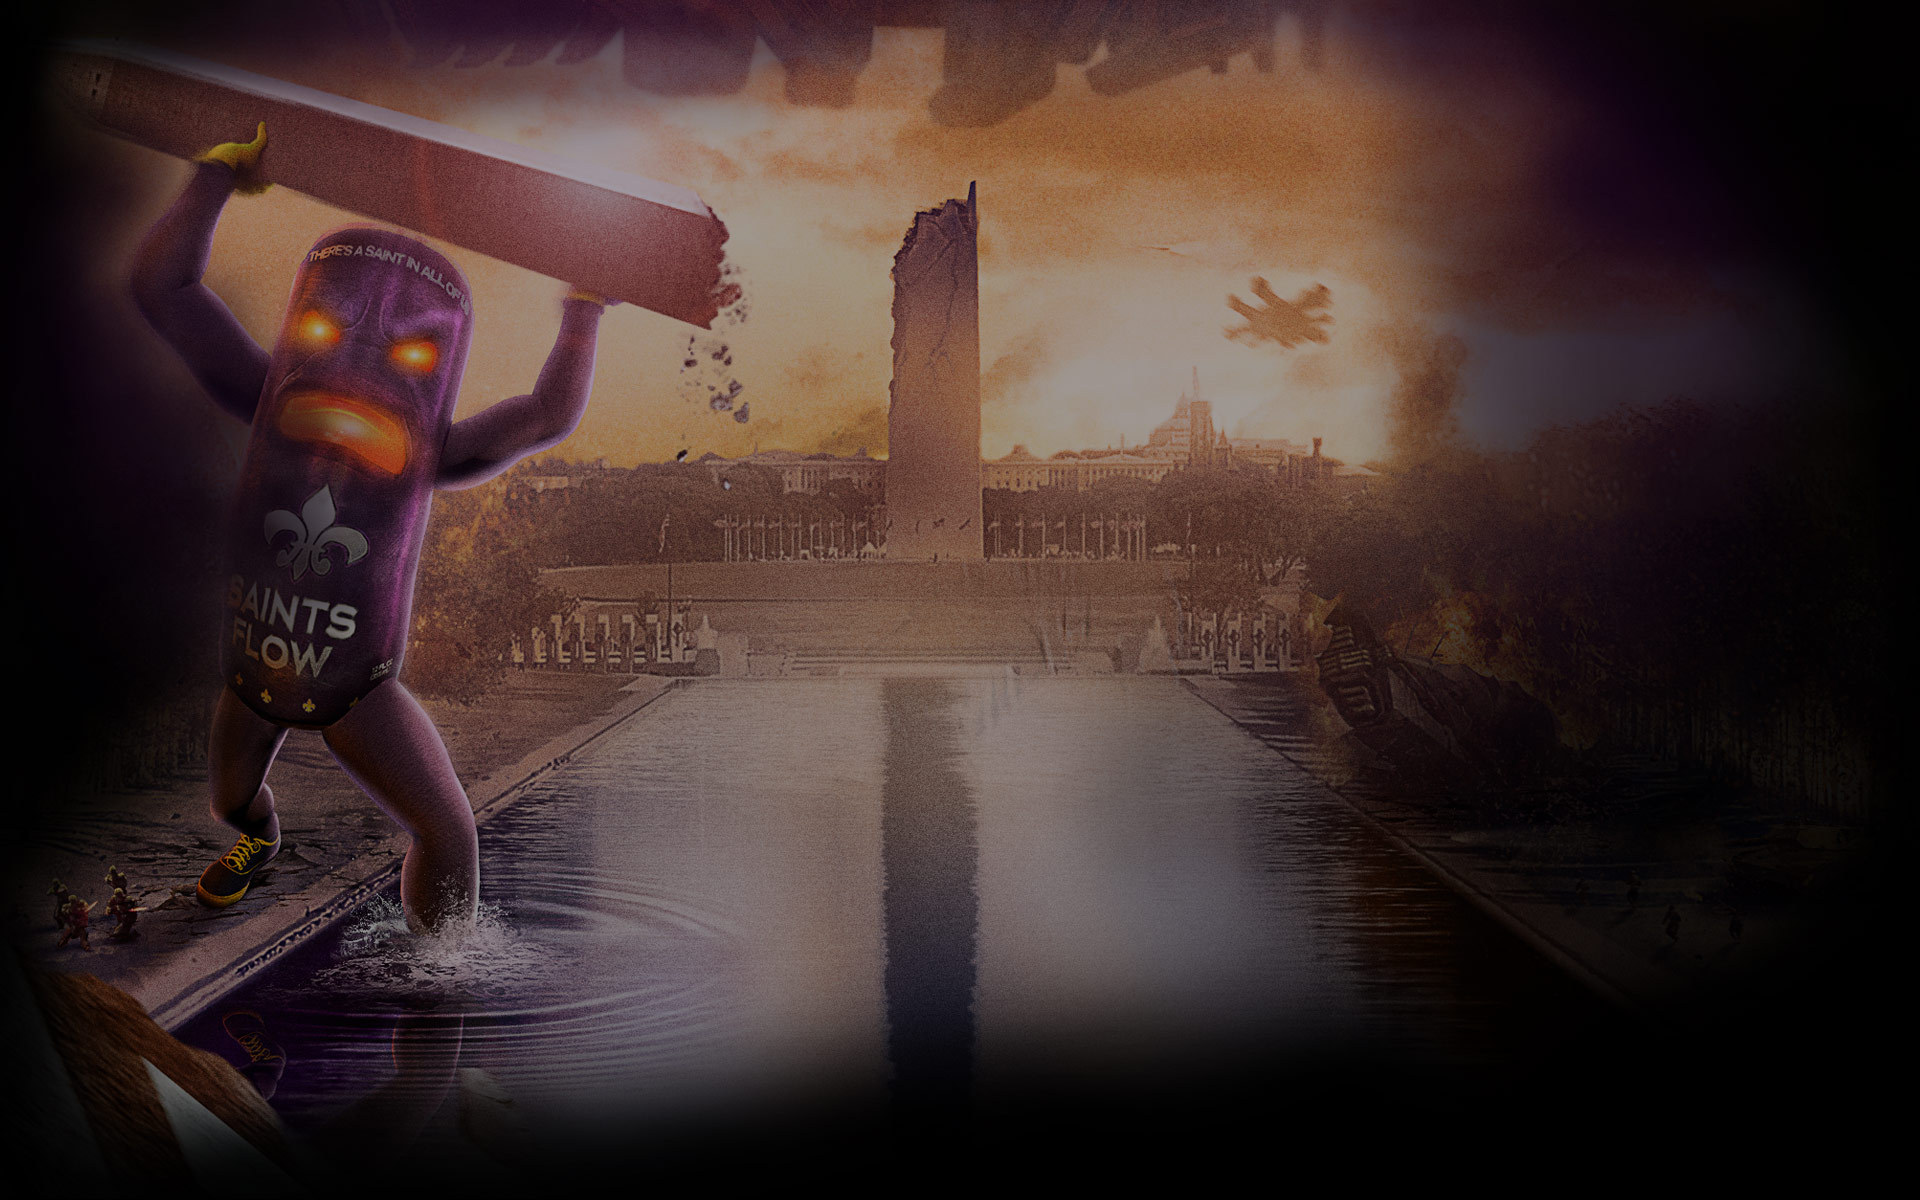 Saints Row 4 Wallpapers: Saints Row IV Computer Wallpapers, Desktop Backgrounds